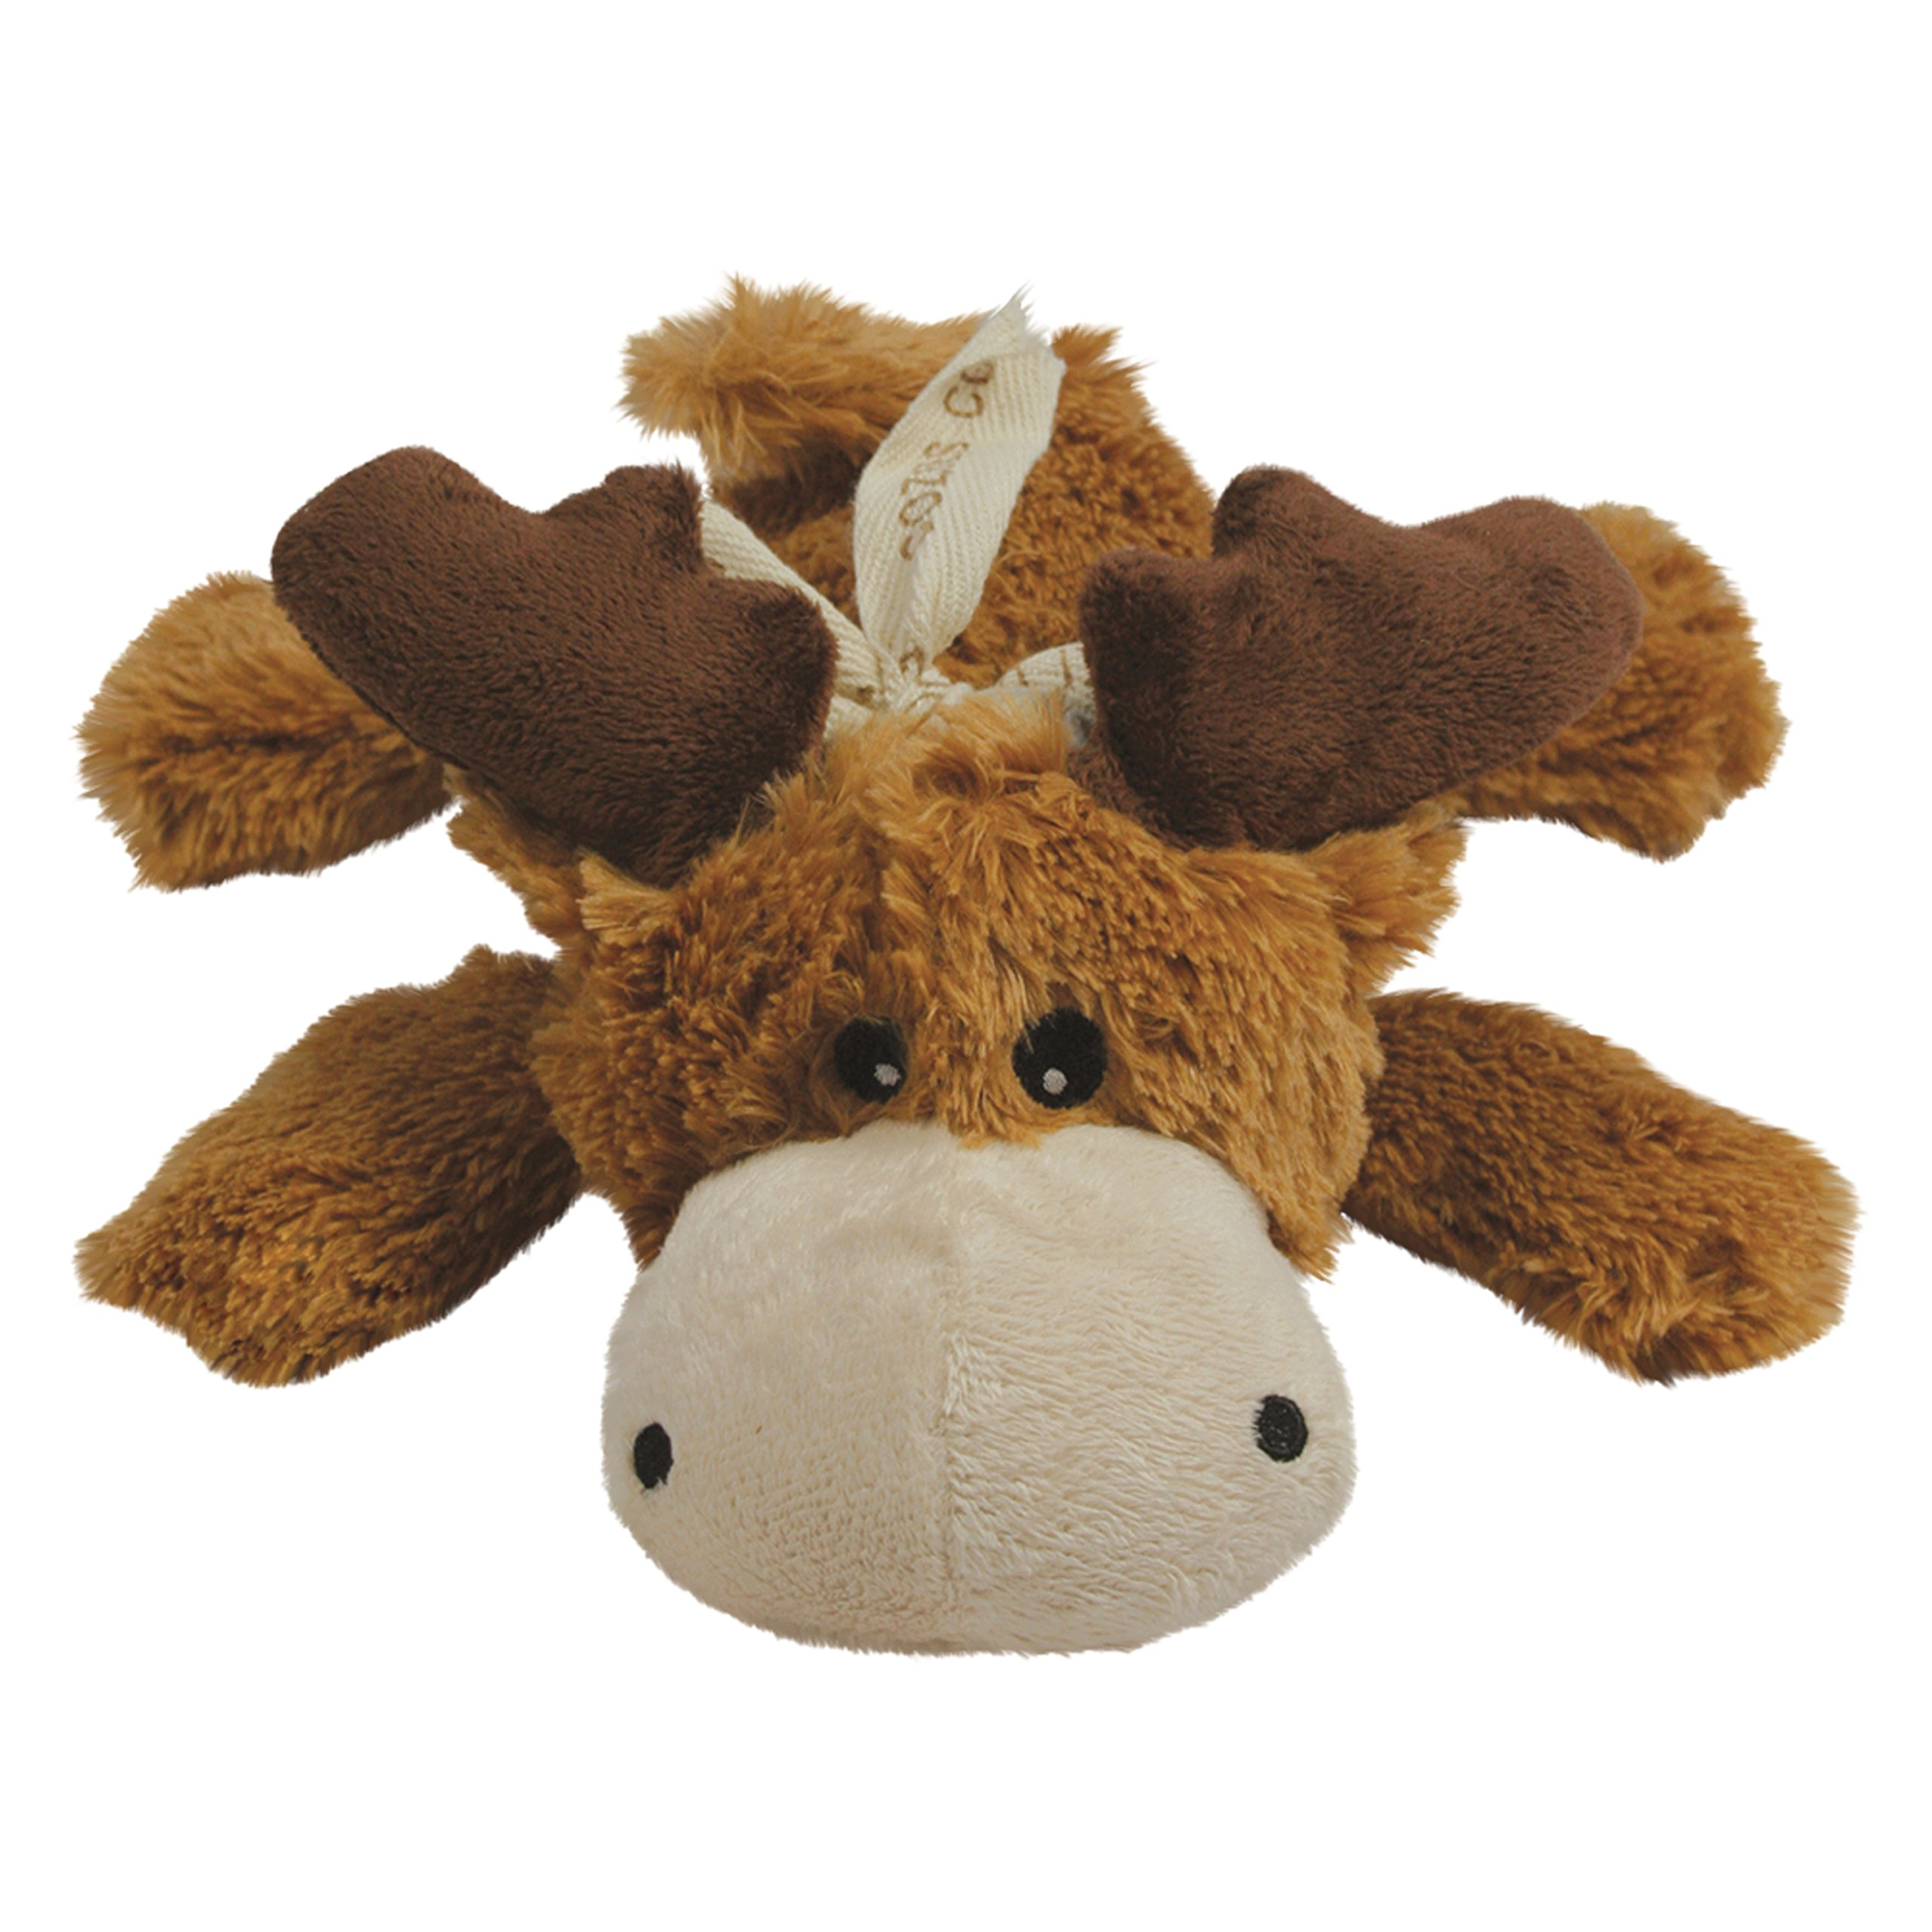 KONG Cozies Dog Squeaky Toy Marvin the Moose XL